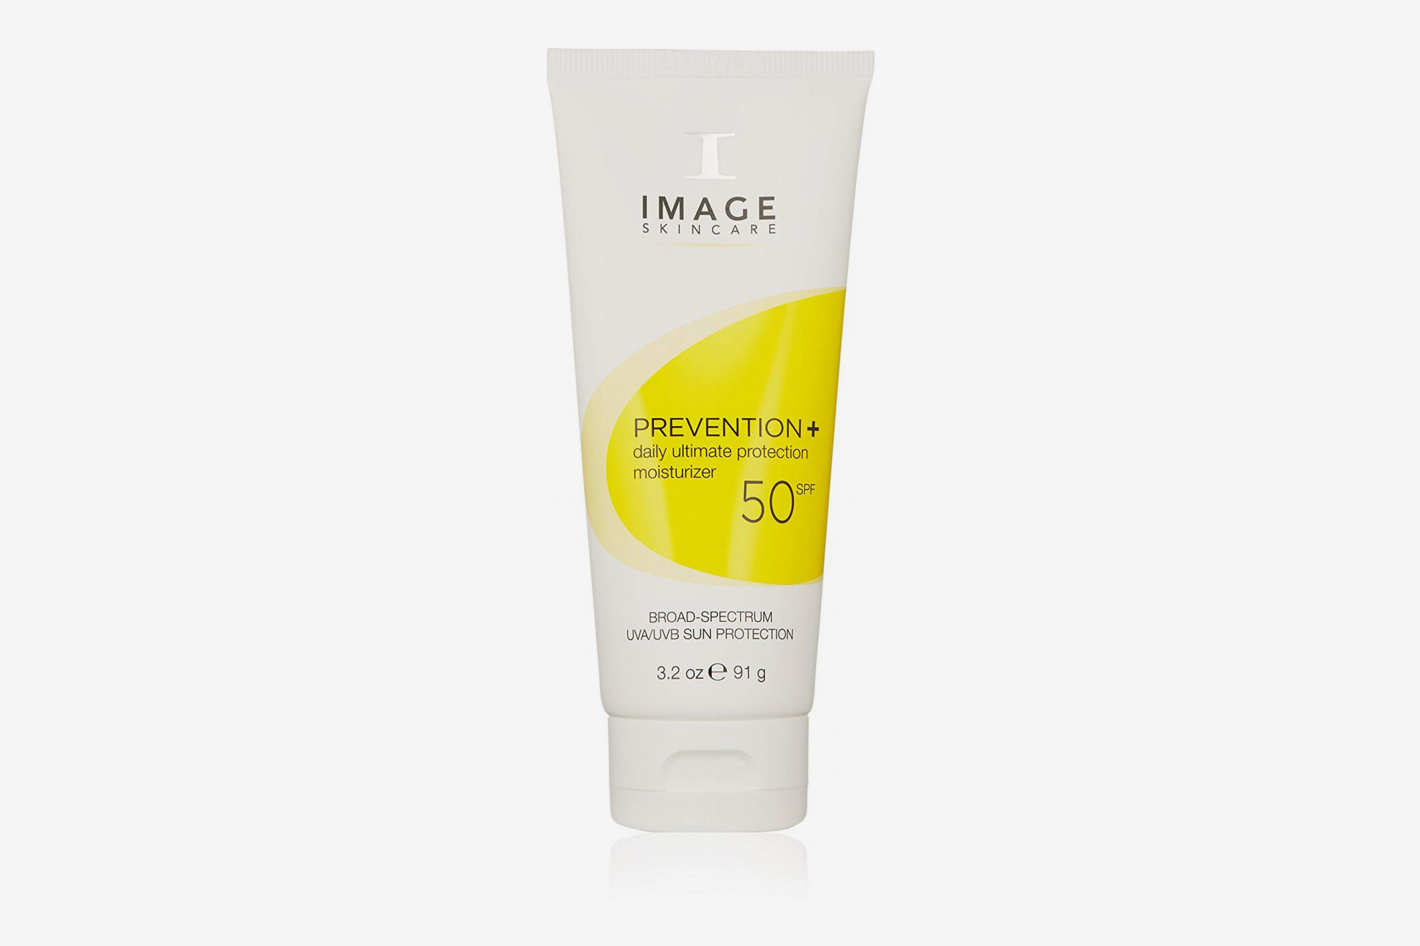 Image Skincare Prevention+ Daily Ultimate Protection